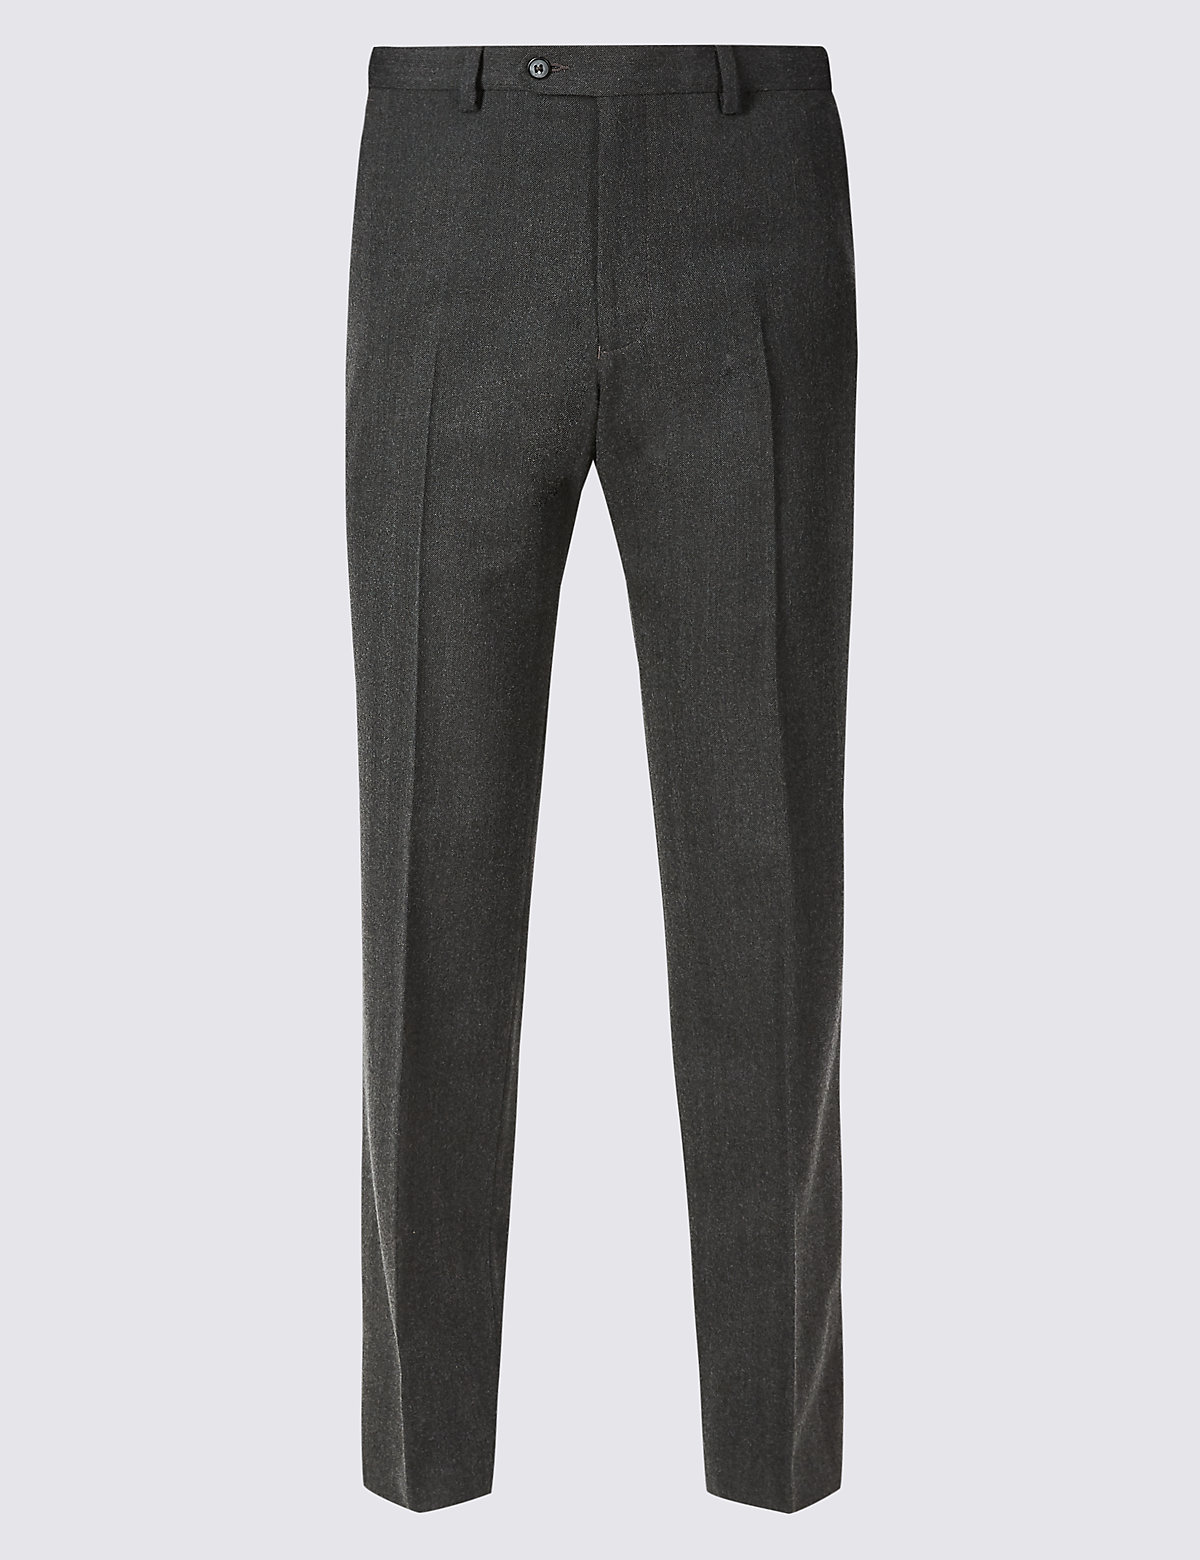 Marks & Spencer Charcoal Regular Fit Wool Blend Flat Front Trousers